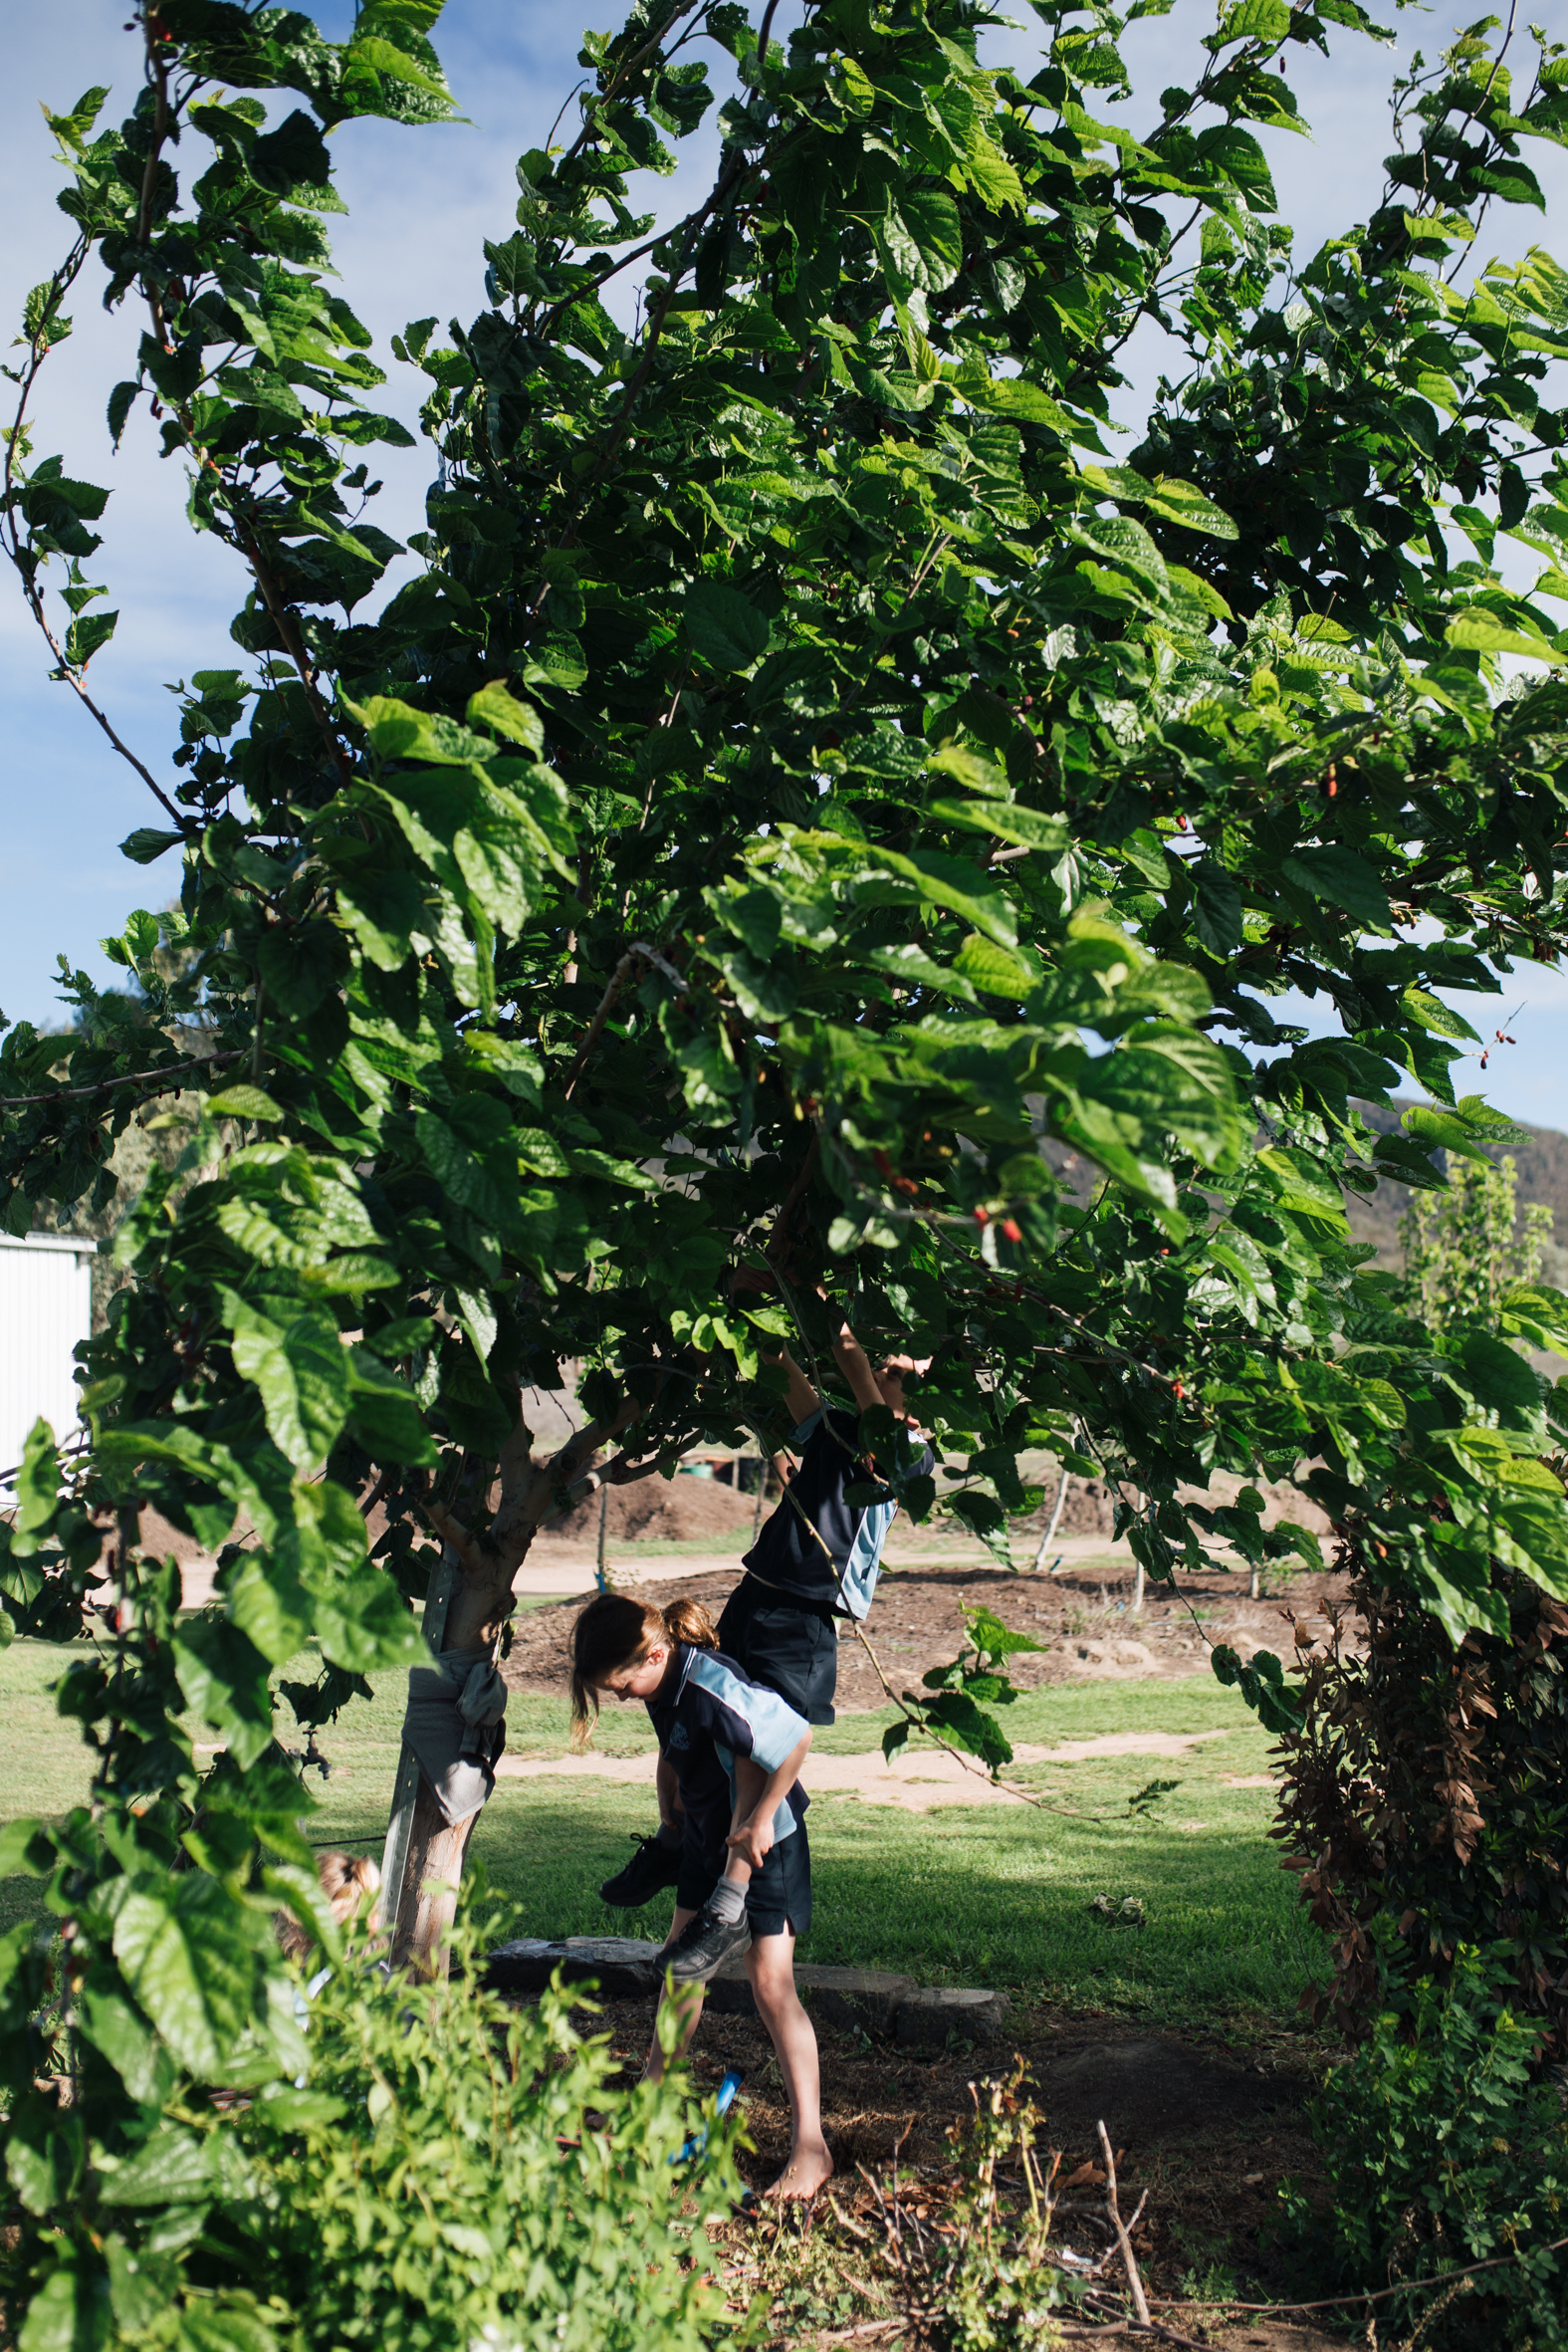 The children picking mulberries